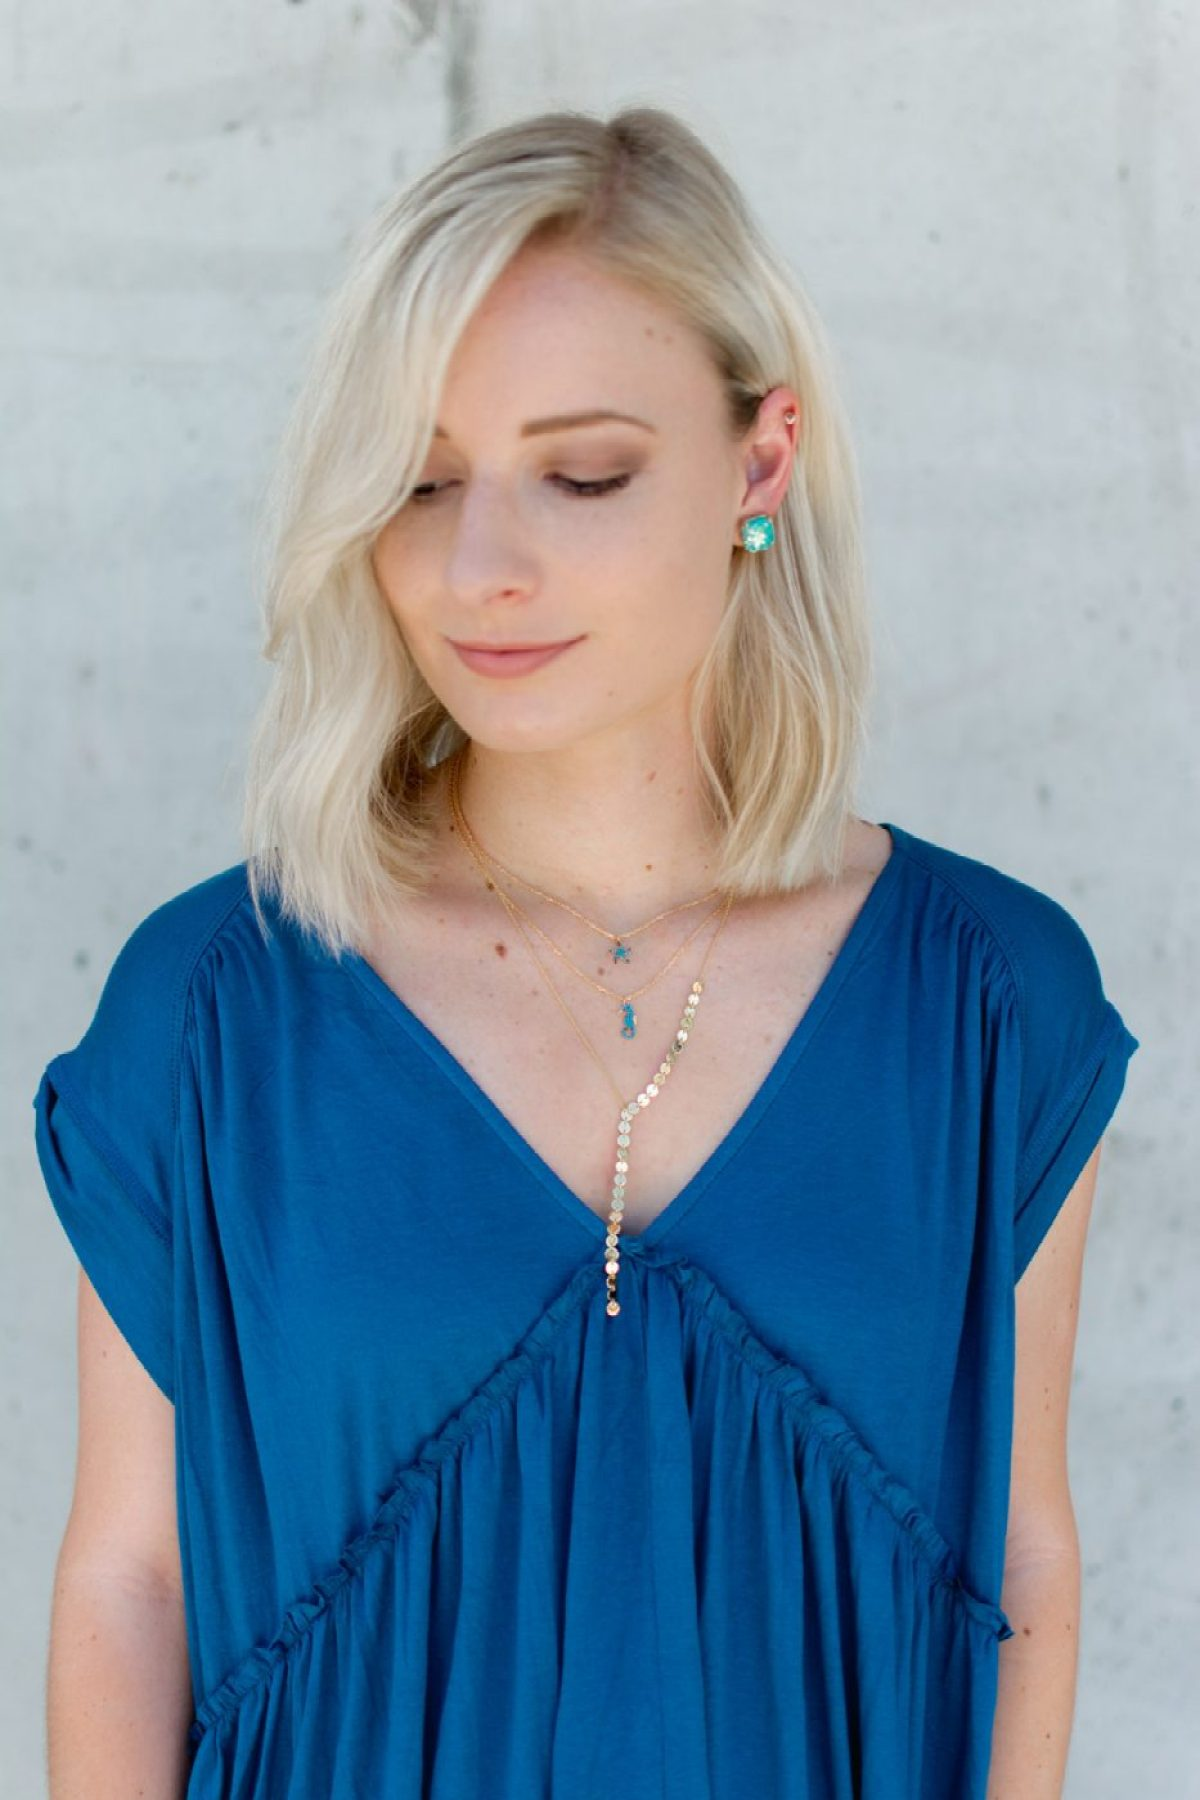 Kate Spade earrings worn with Motif necklaces by Jenny Bess of Sweet Teal